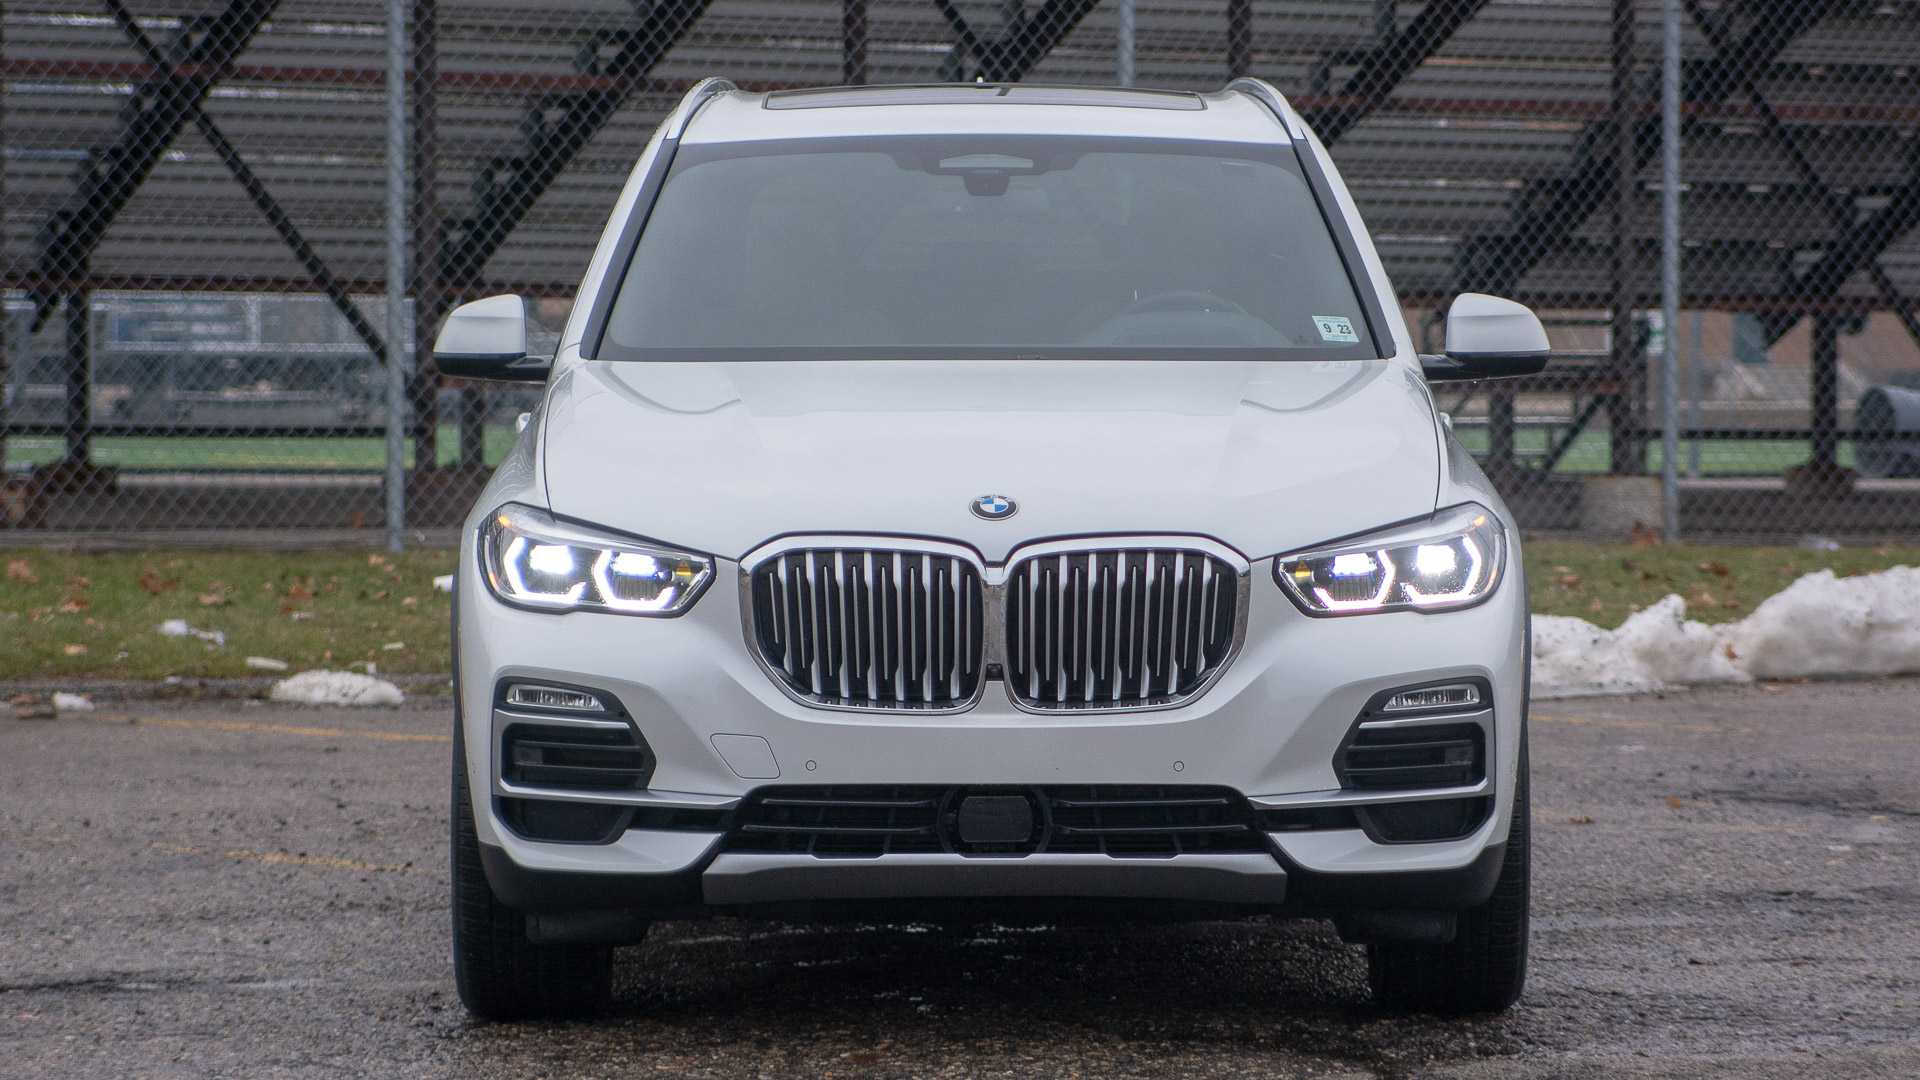 2019 BMW X5 xDrive40i Review: Everyday Xcellence